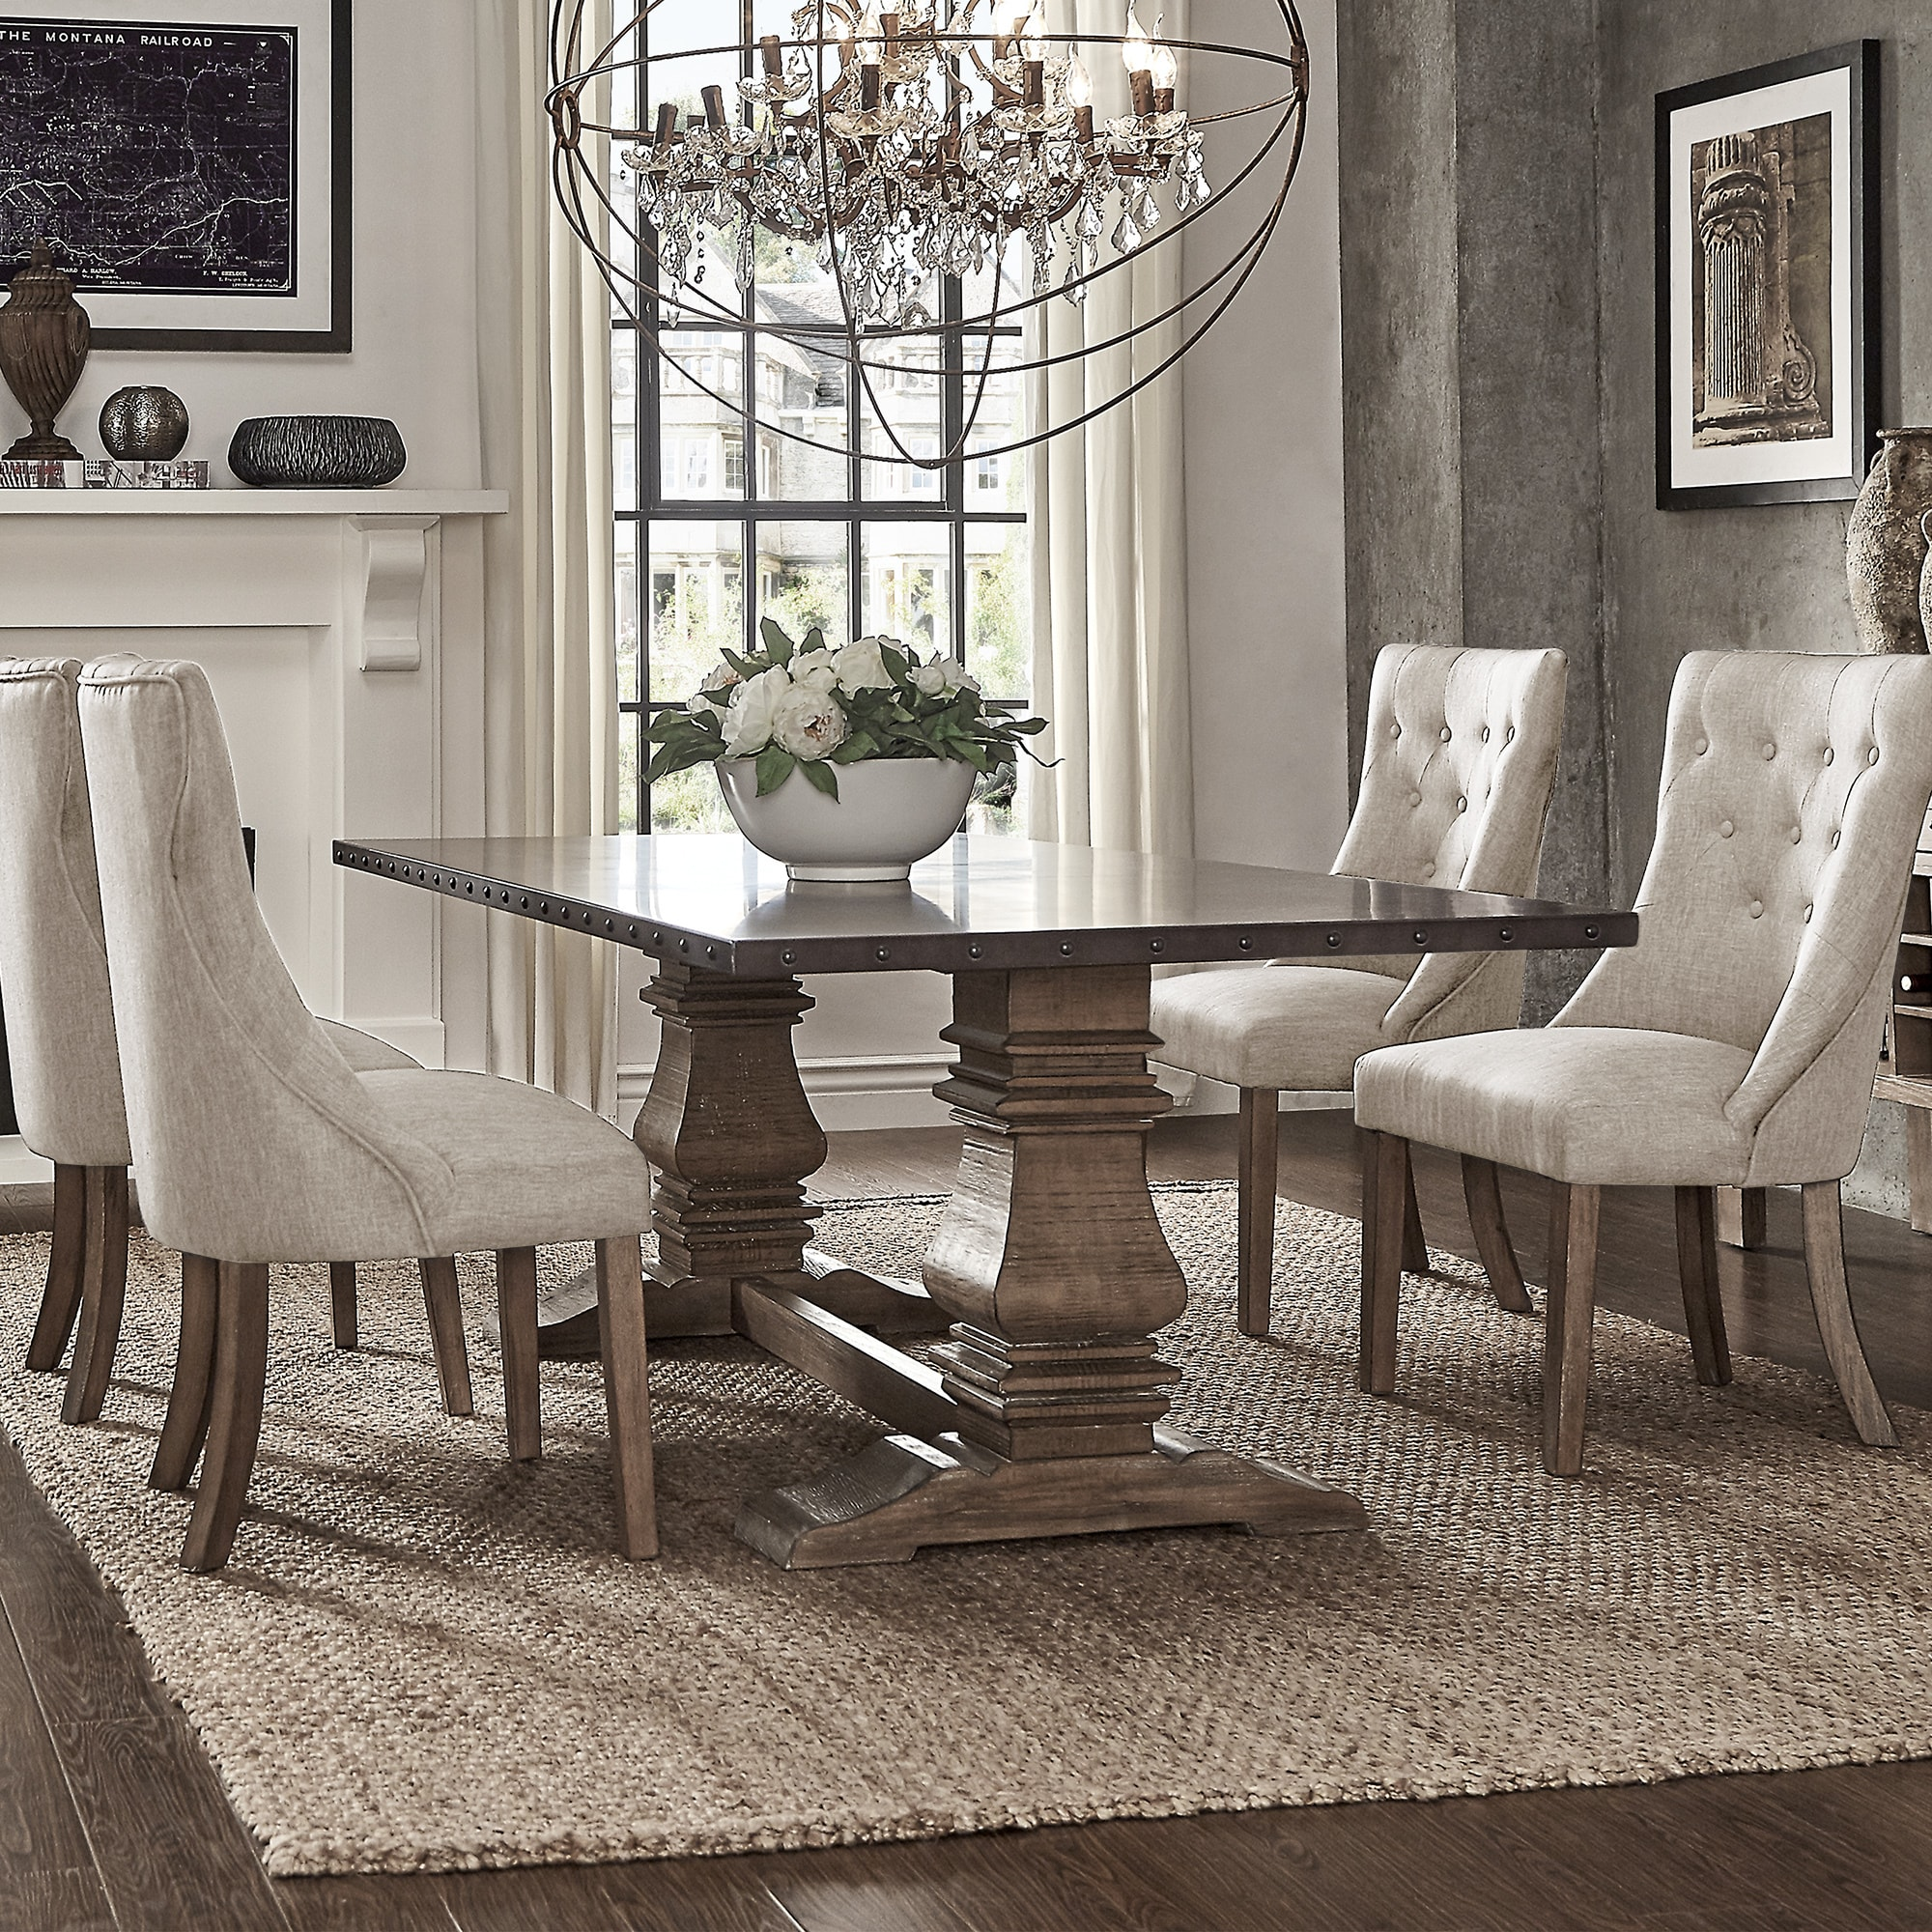 Shop Janelle Extended Rustic Zinc Dining Set With Tufted Chairs By INSPIRE  Q Artisan   On Sale   Free Shipping Today   Overstock.com   19842961